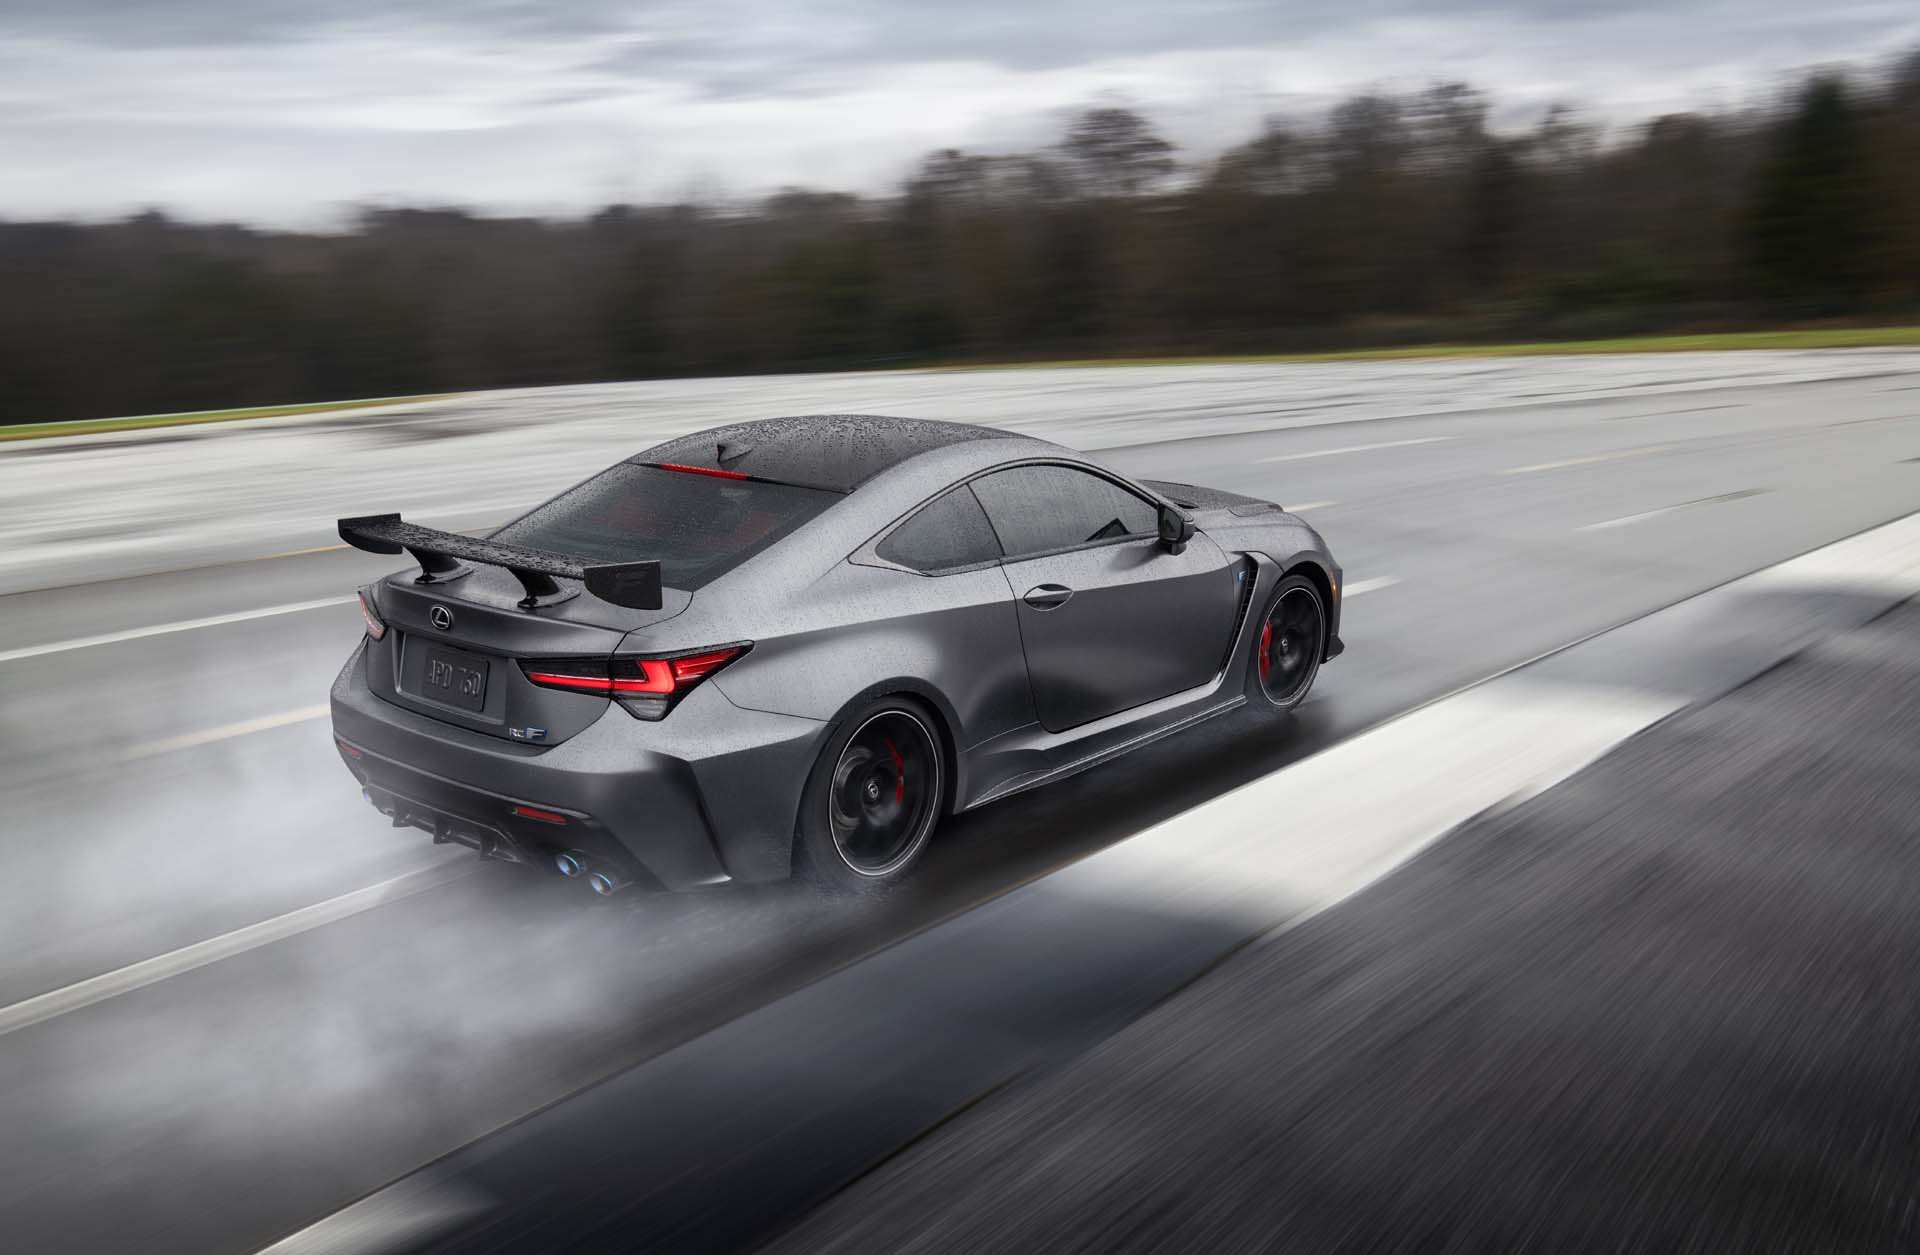 85 Gallery of 2020 Lexus Rc F Track Edition Engine by 2020 Lexus Rc F Track Edition